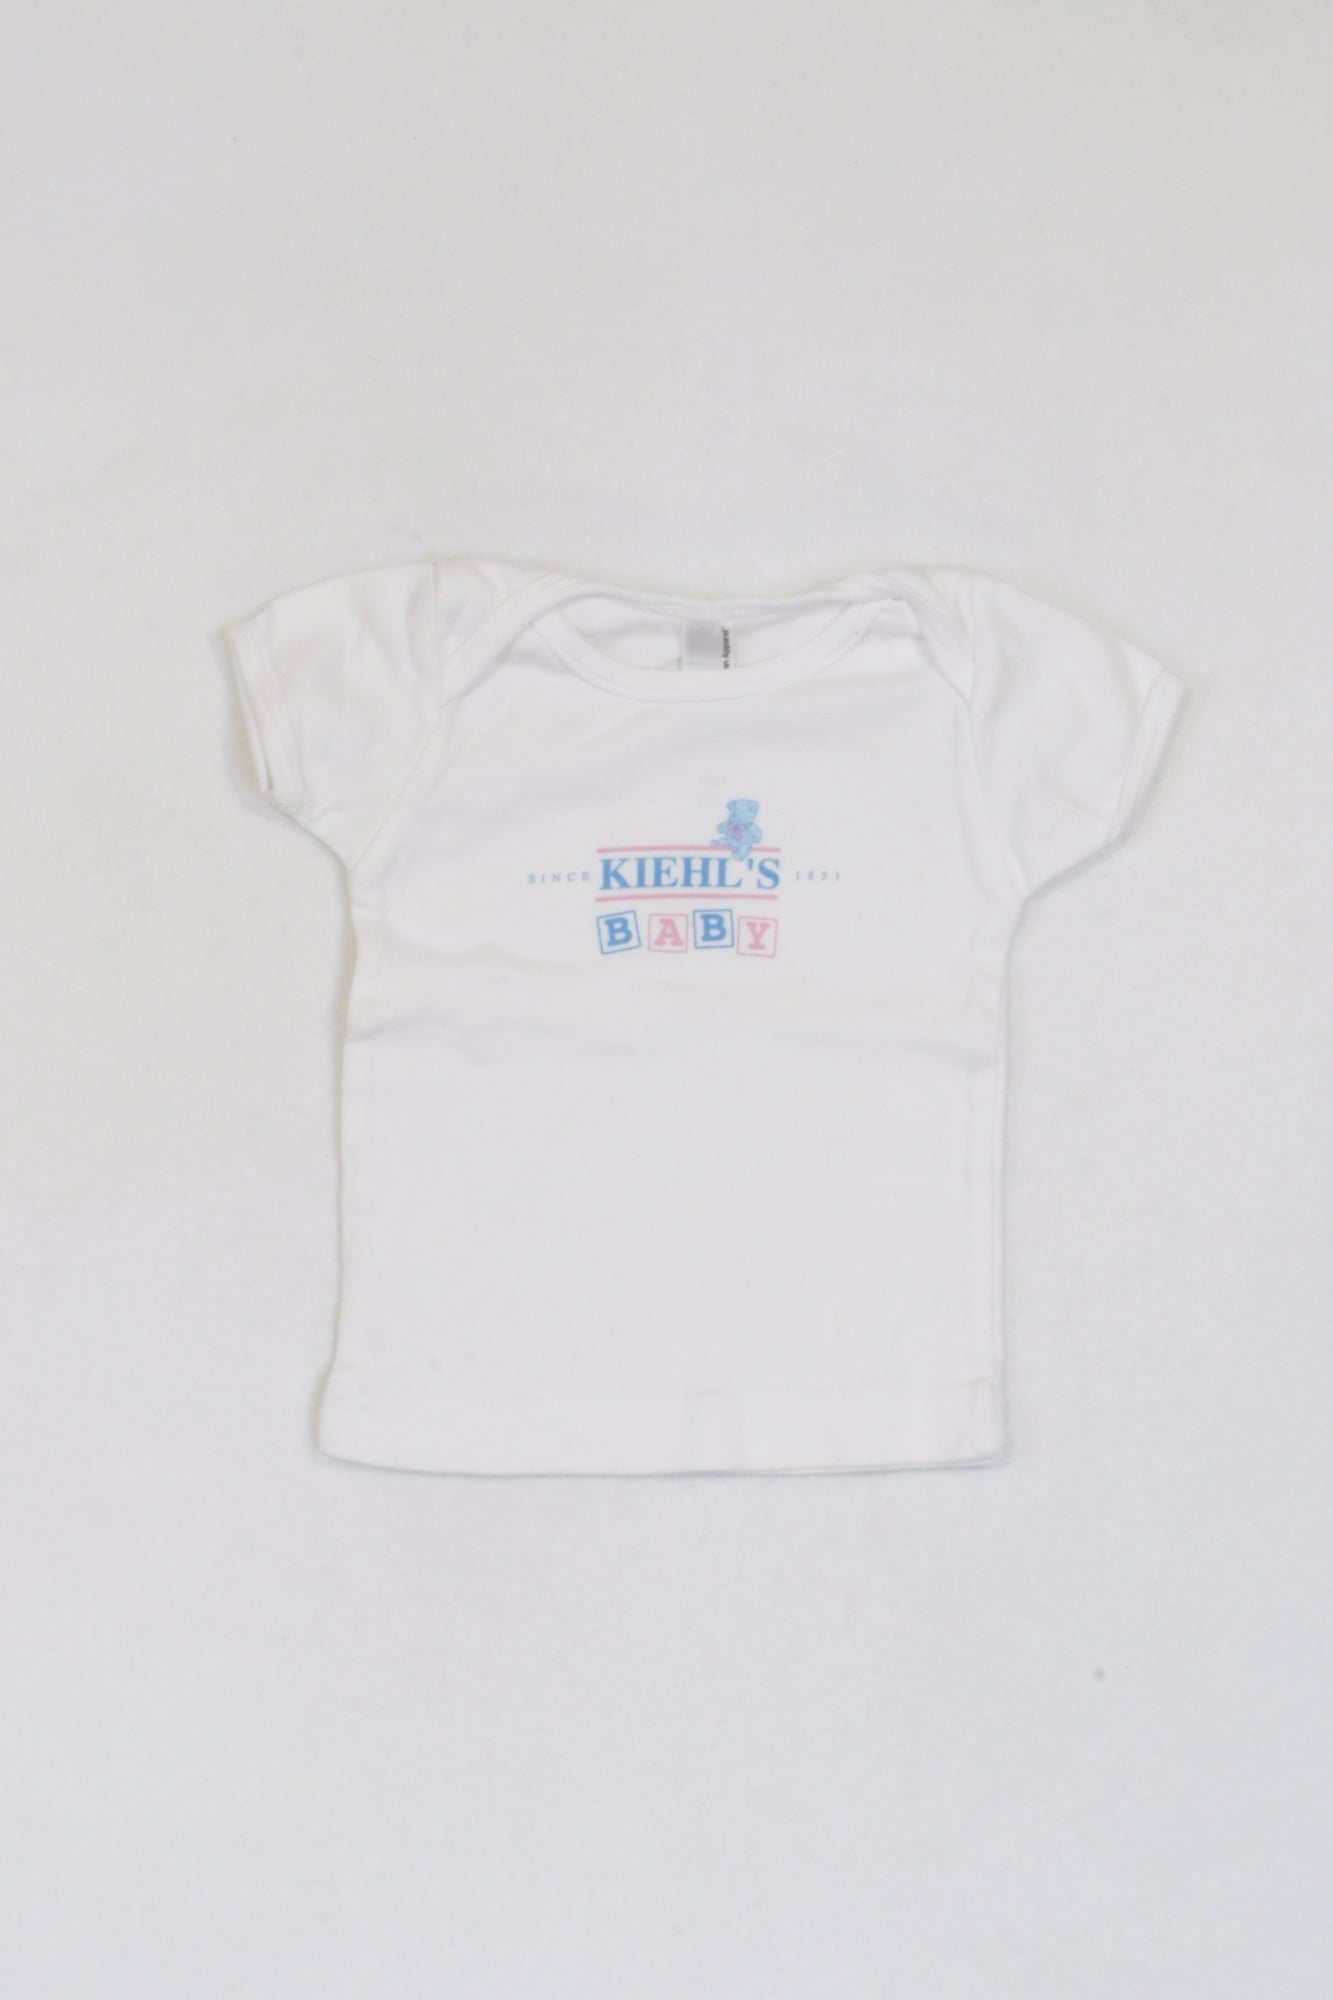 American Apparel White Kiehl's Baby Top Unisex 6-12 months